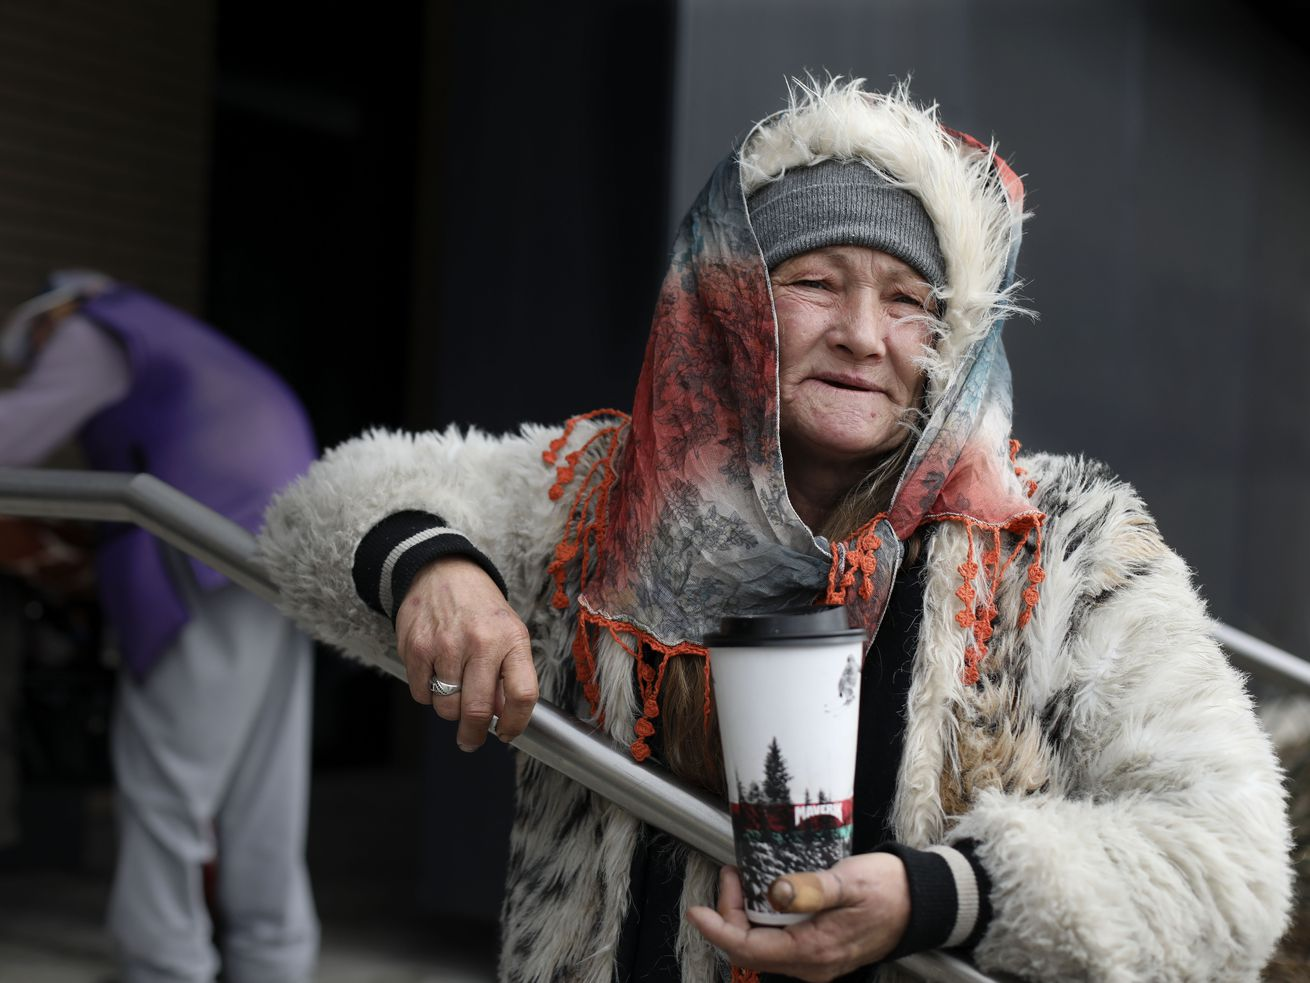 Rina Sommer-Bowen, who currently resides at the Geraldine E King Women's Center in Salt Lake City, is pictured on Wednesday, Nov. 20, 2019. Sommer-Bowen was one of the first women to move into the center when it opened a few months ago.